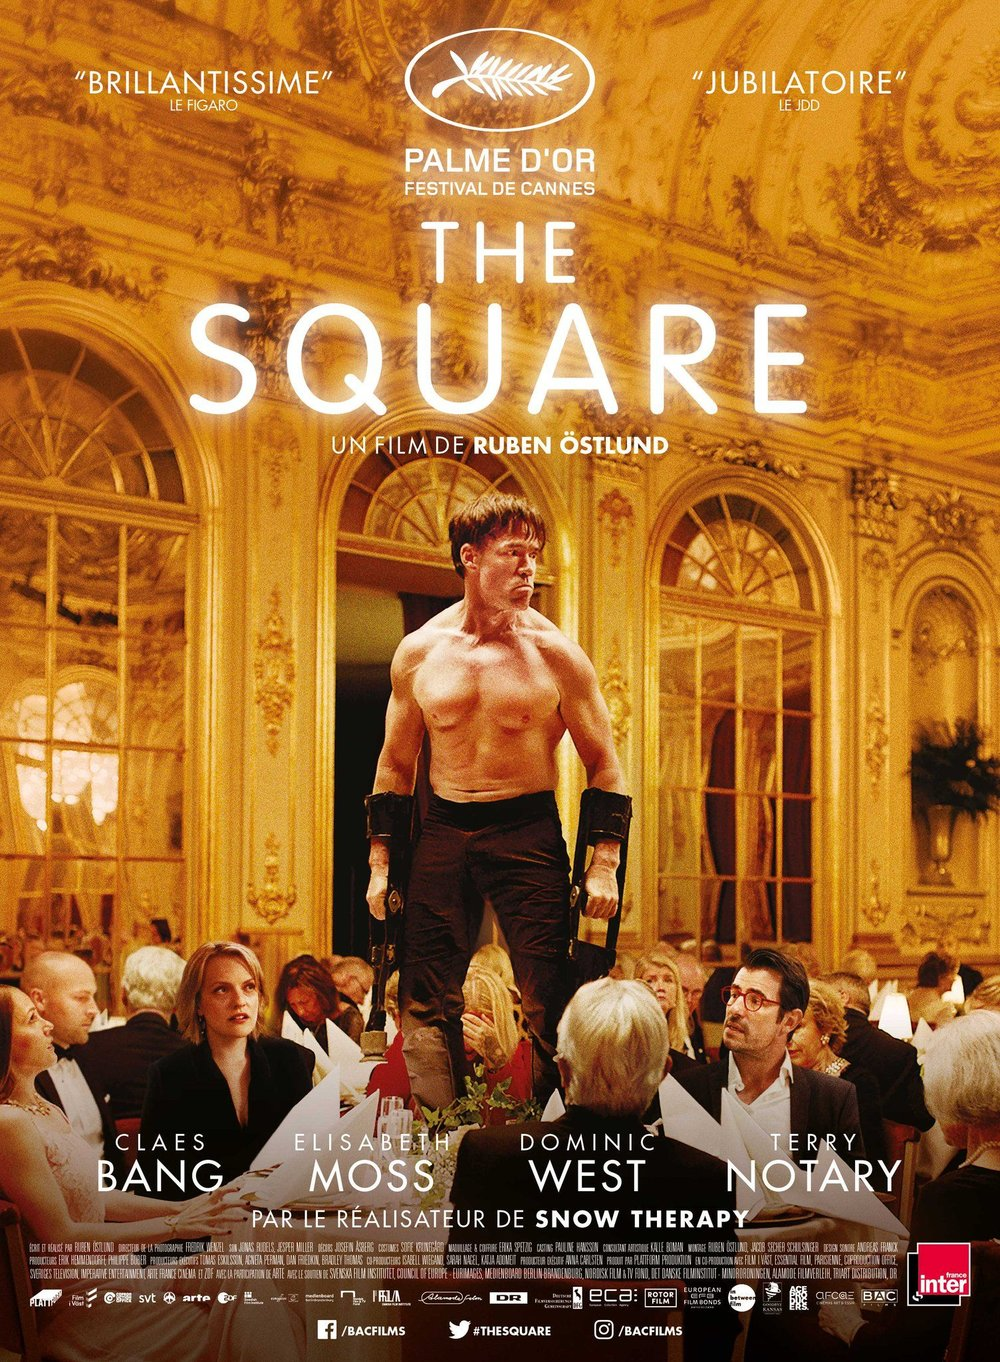 thesquare_poster.jpg